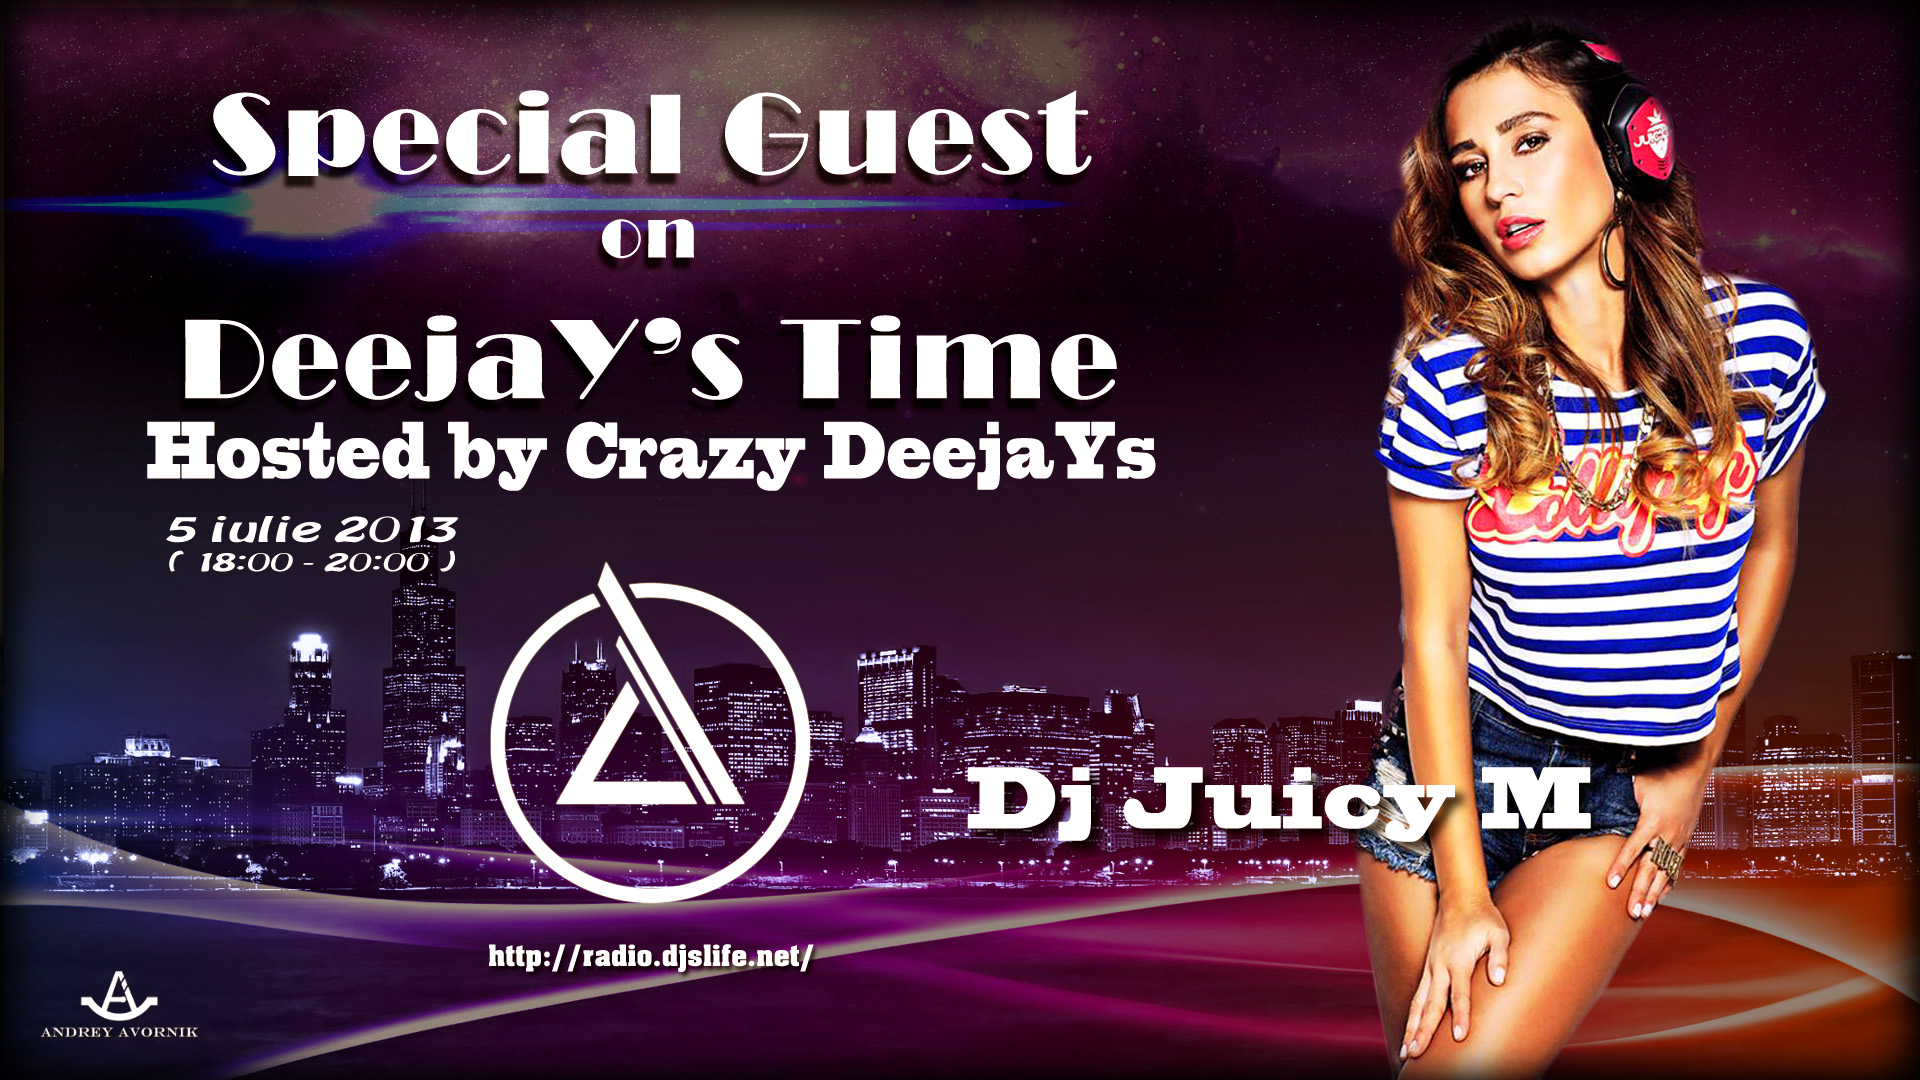 Crazy Deejays And Dj Juicy M Special Guest For Deejays Time